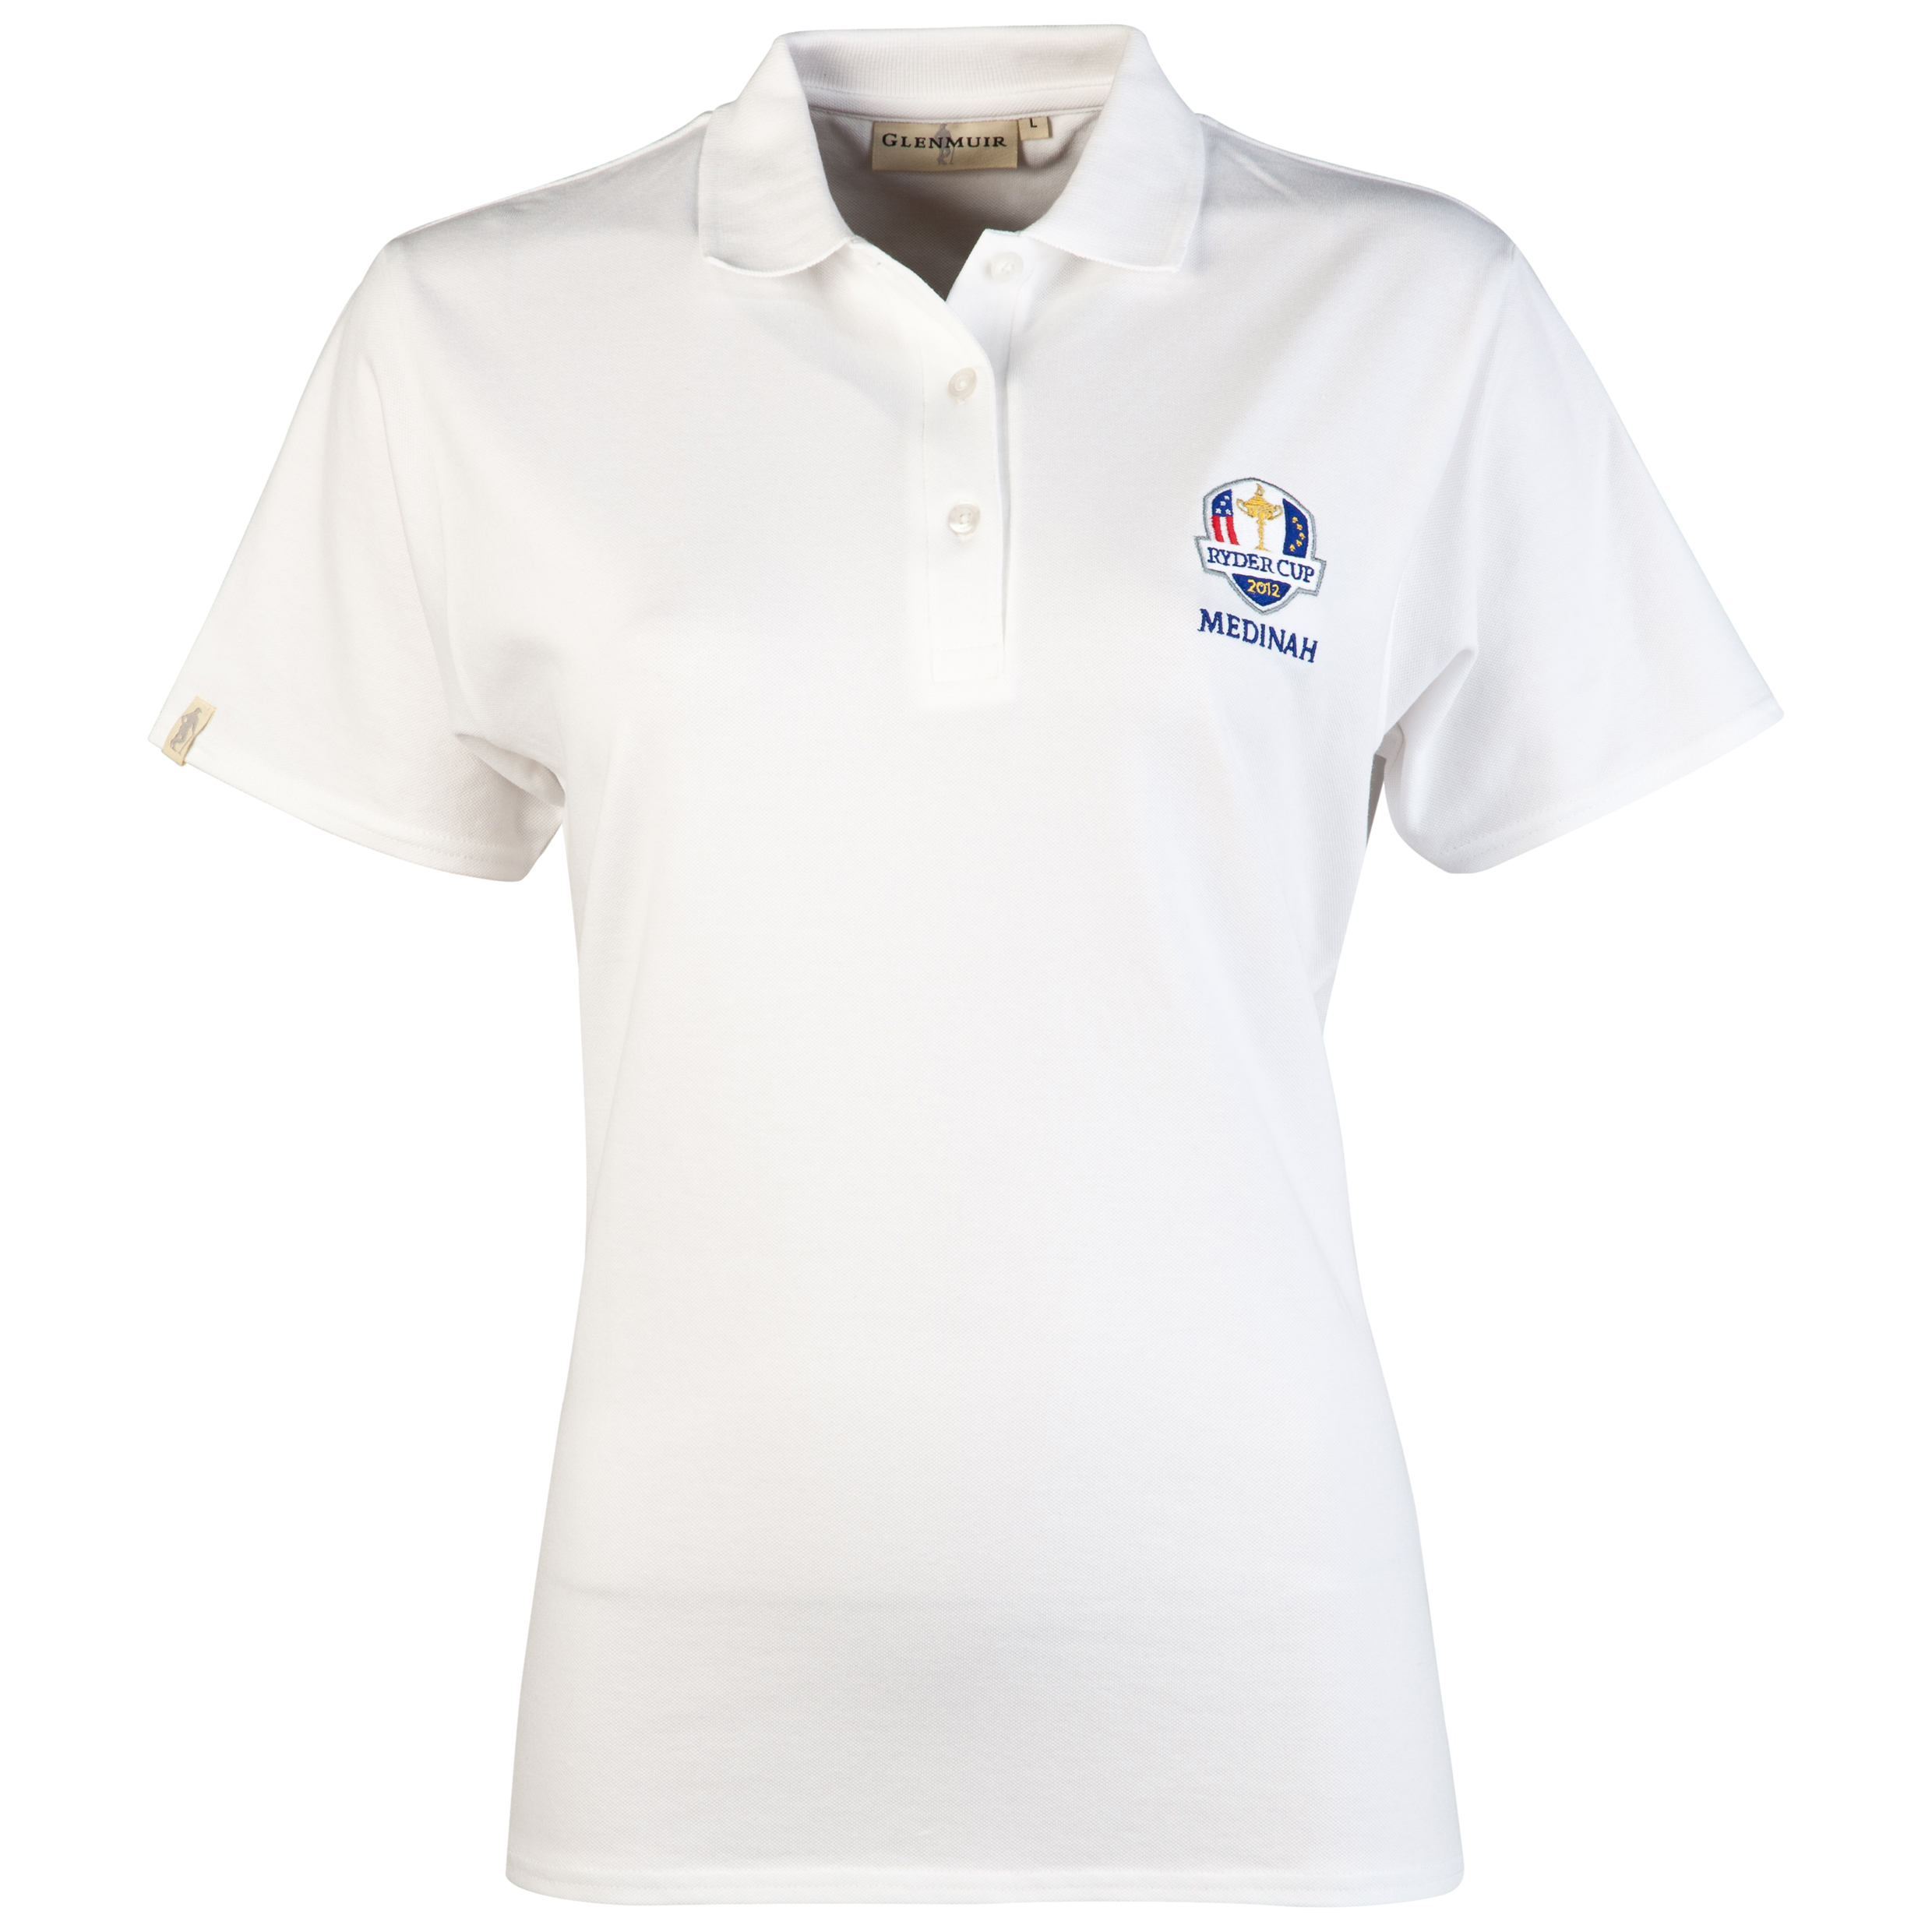 The Ryder Cup Medinah 2012 Glenmuir Sophie Women's Polo - White